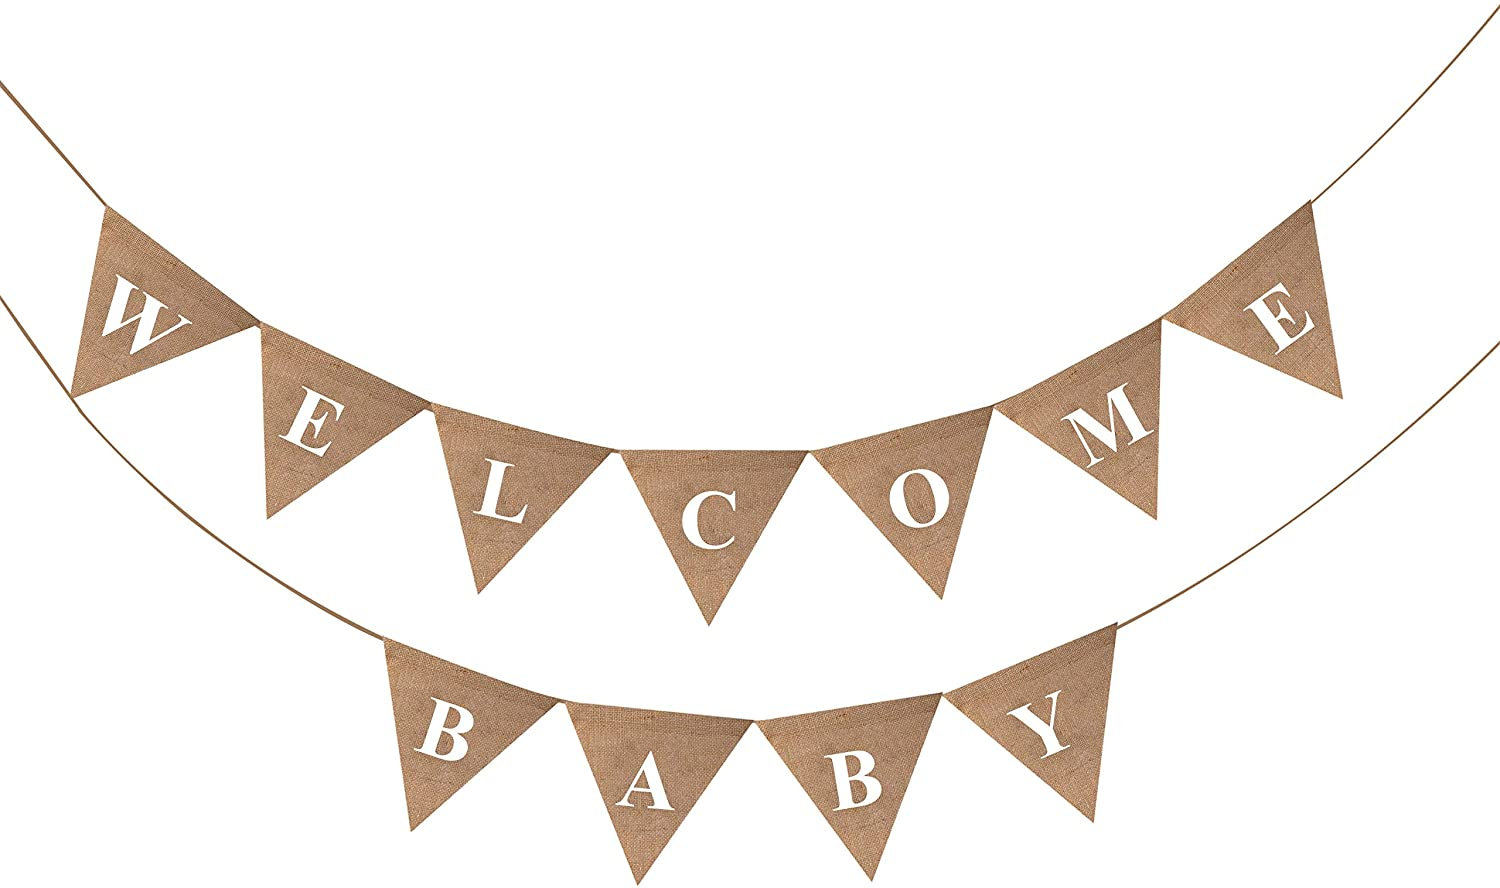 Amazon Com Boston Creative Company Llc Welcome Baby Burlap Baby Shower Banner Welcome Baby Home Decor Birthday Decor Spring Shower Baby Photo Props Baby Announcement Kitchen Dining